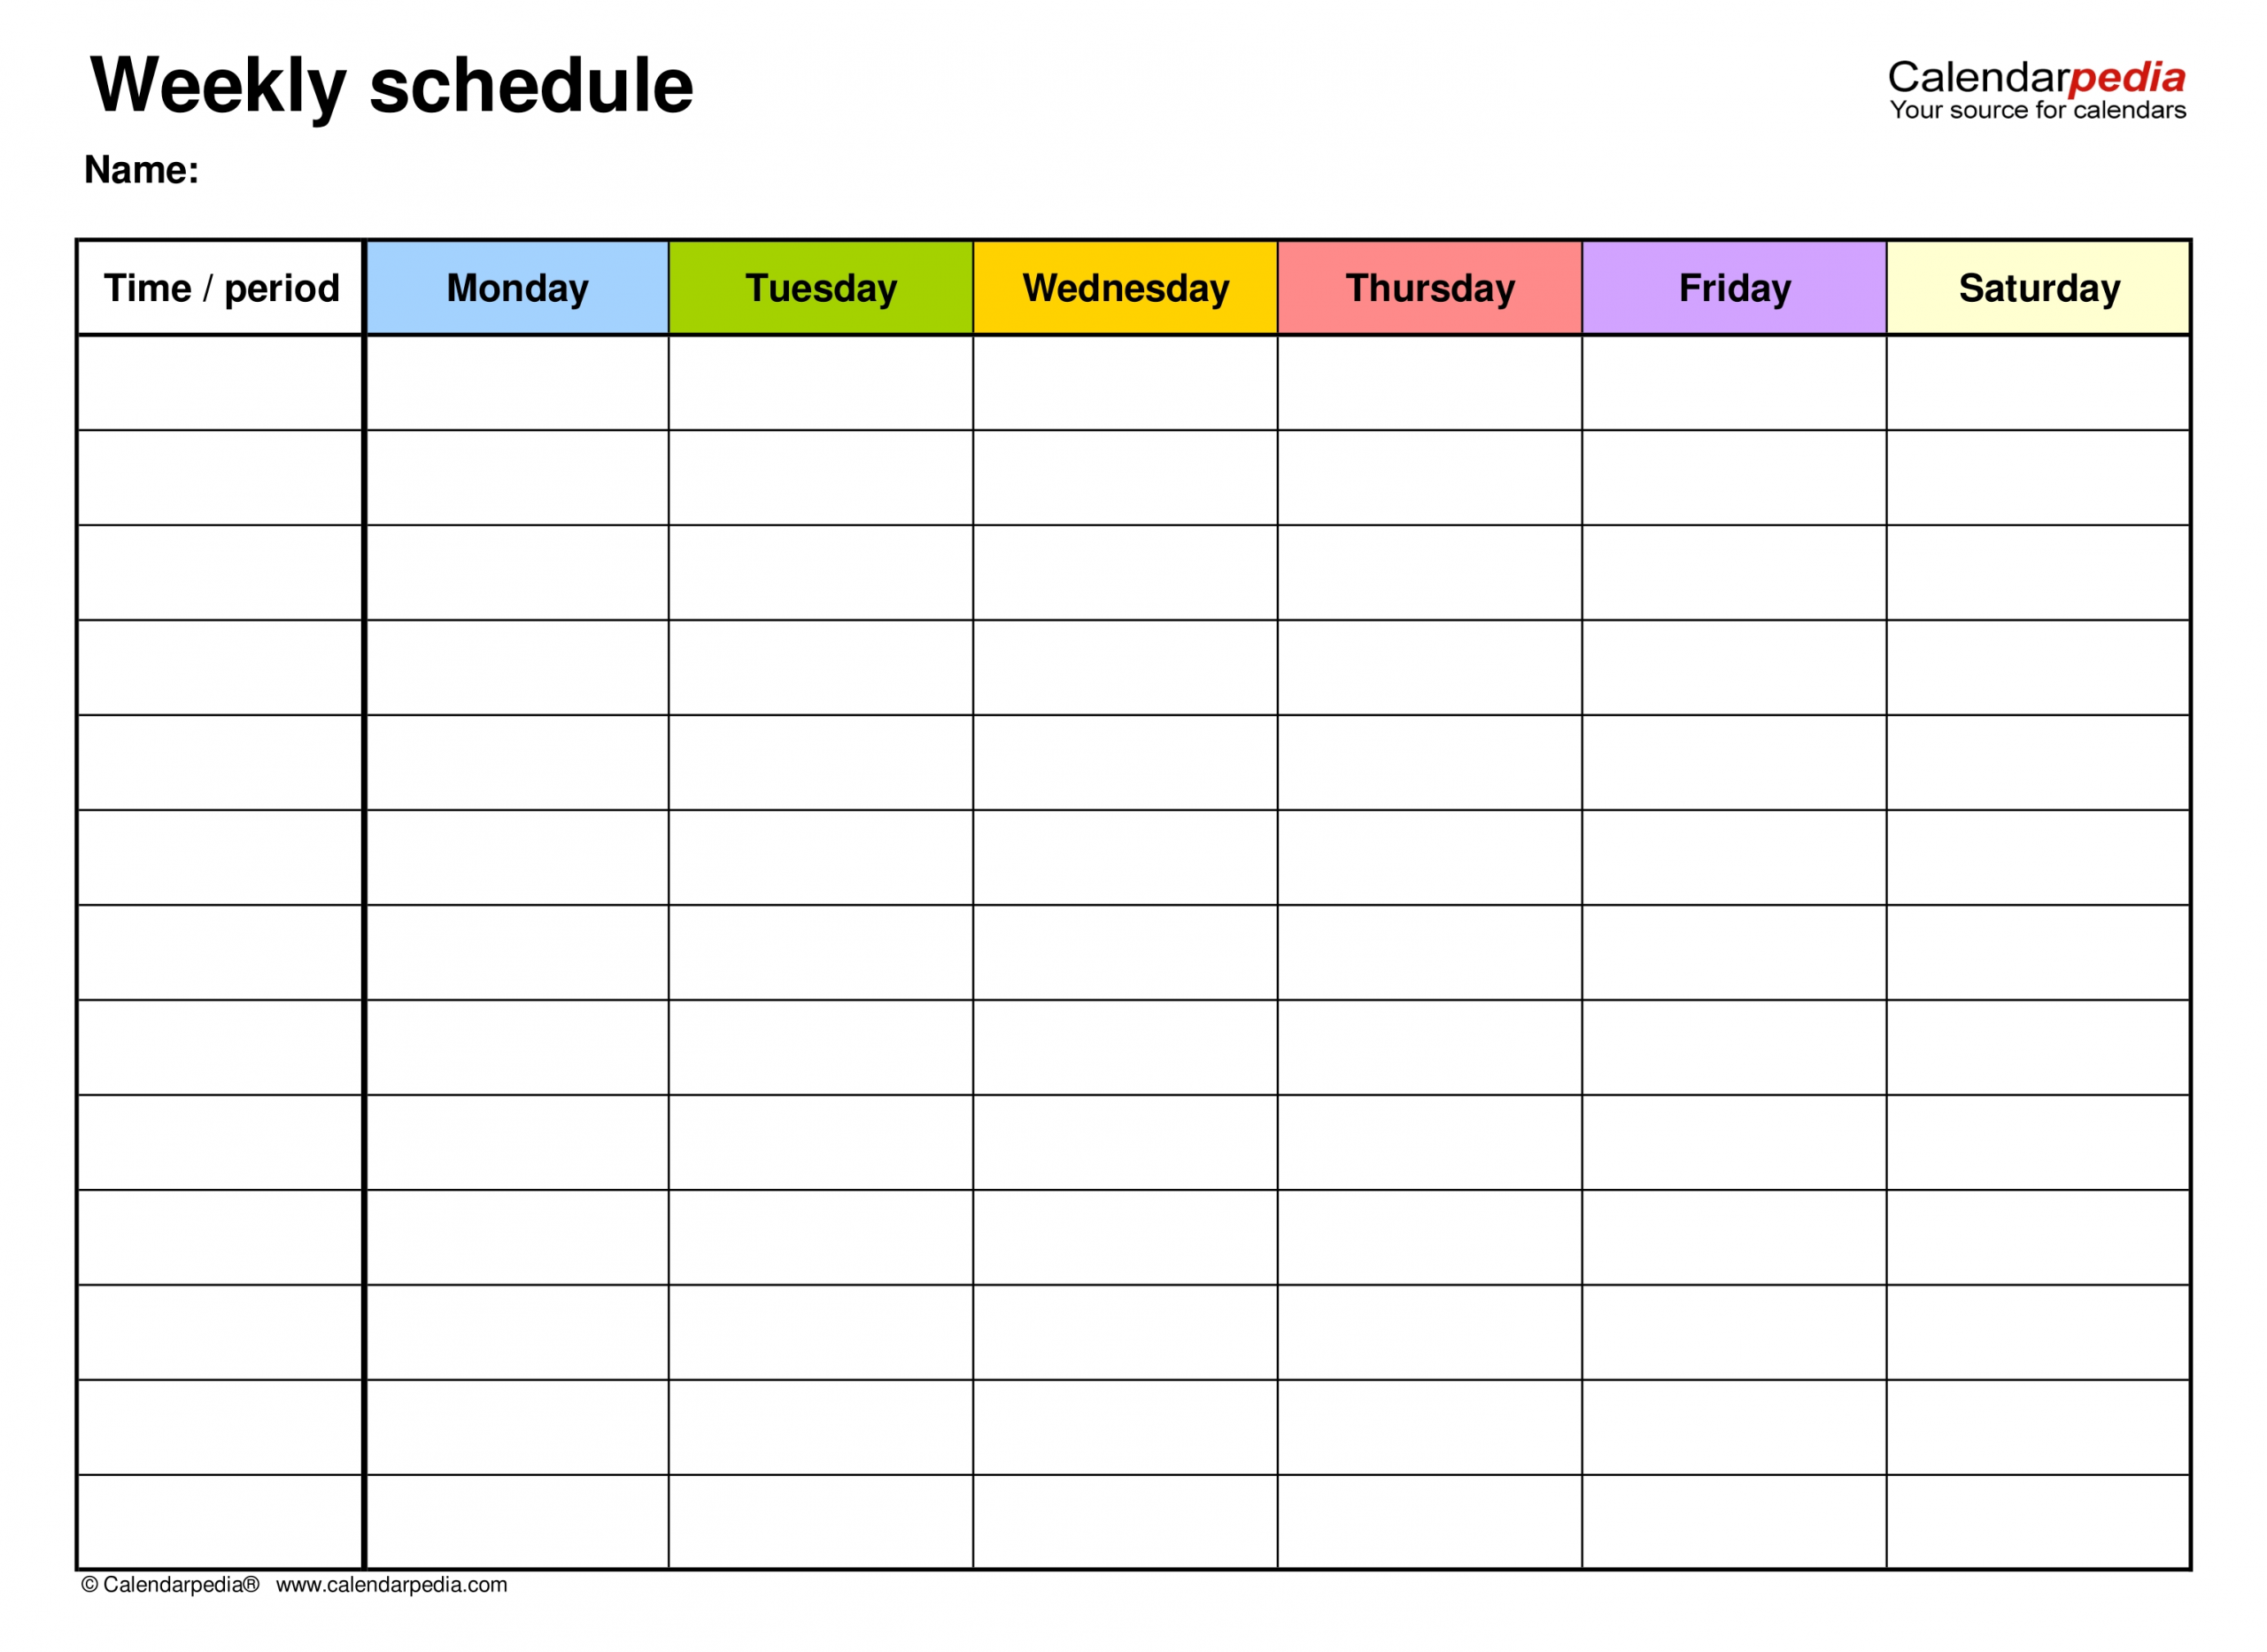 Get Printable Weekly Schedule With Times